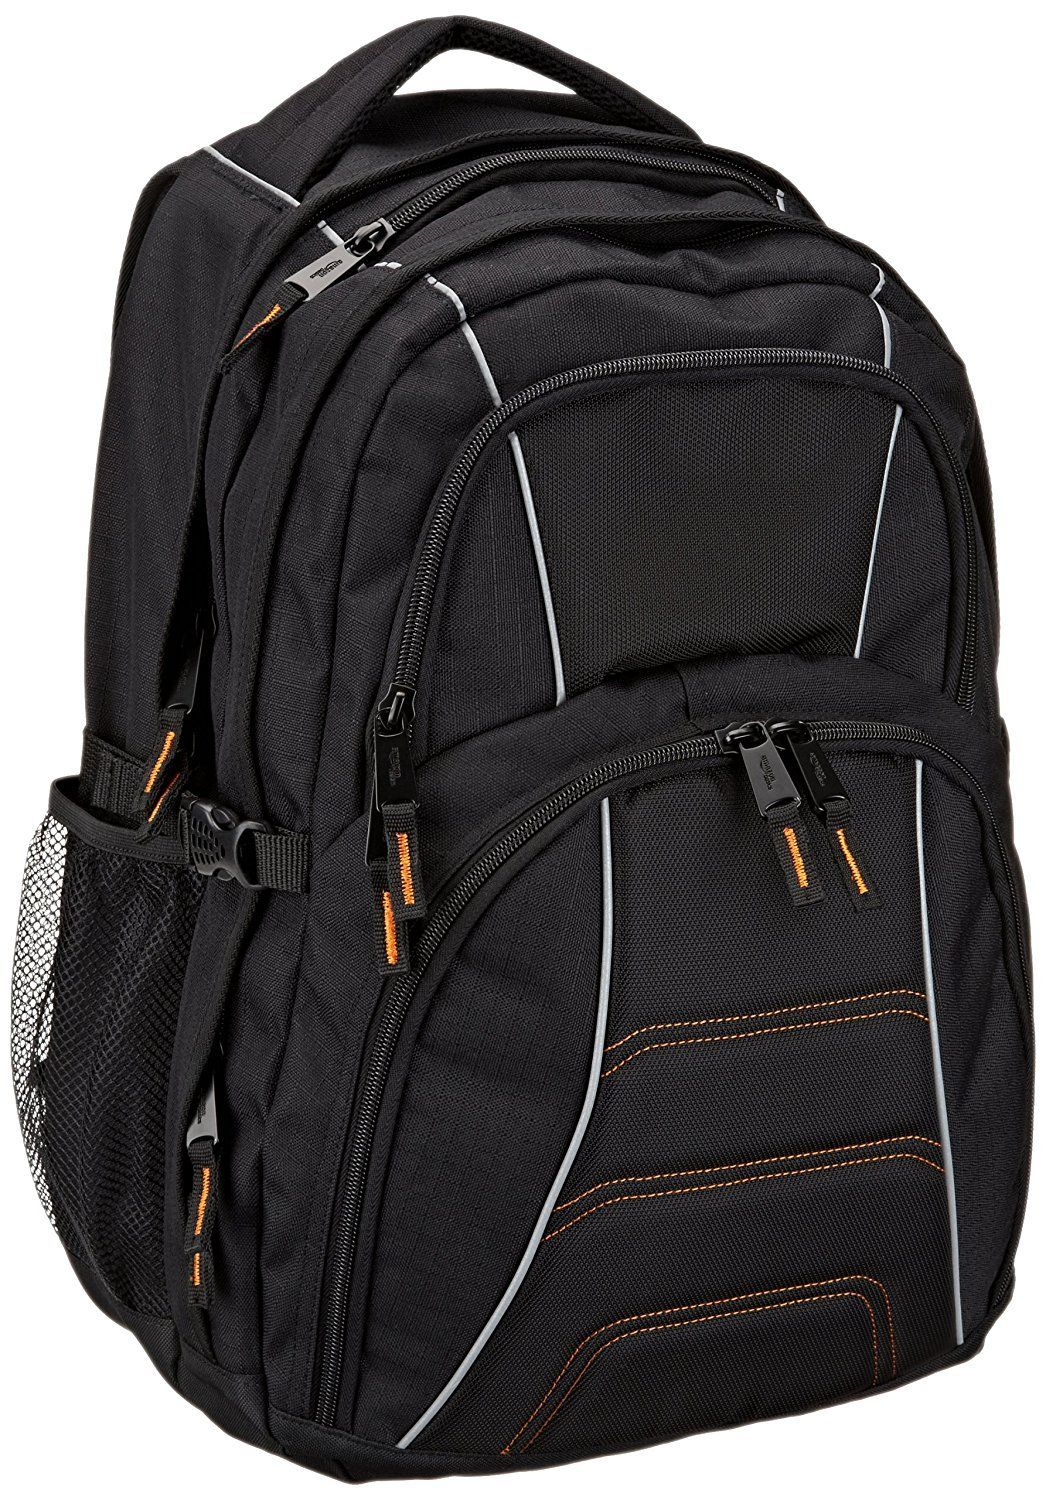 Top 10 Best Laptop Backpack Reviews In 2018  15a5a6883b0a0